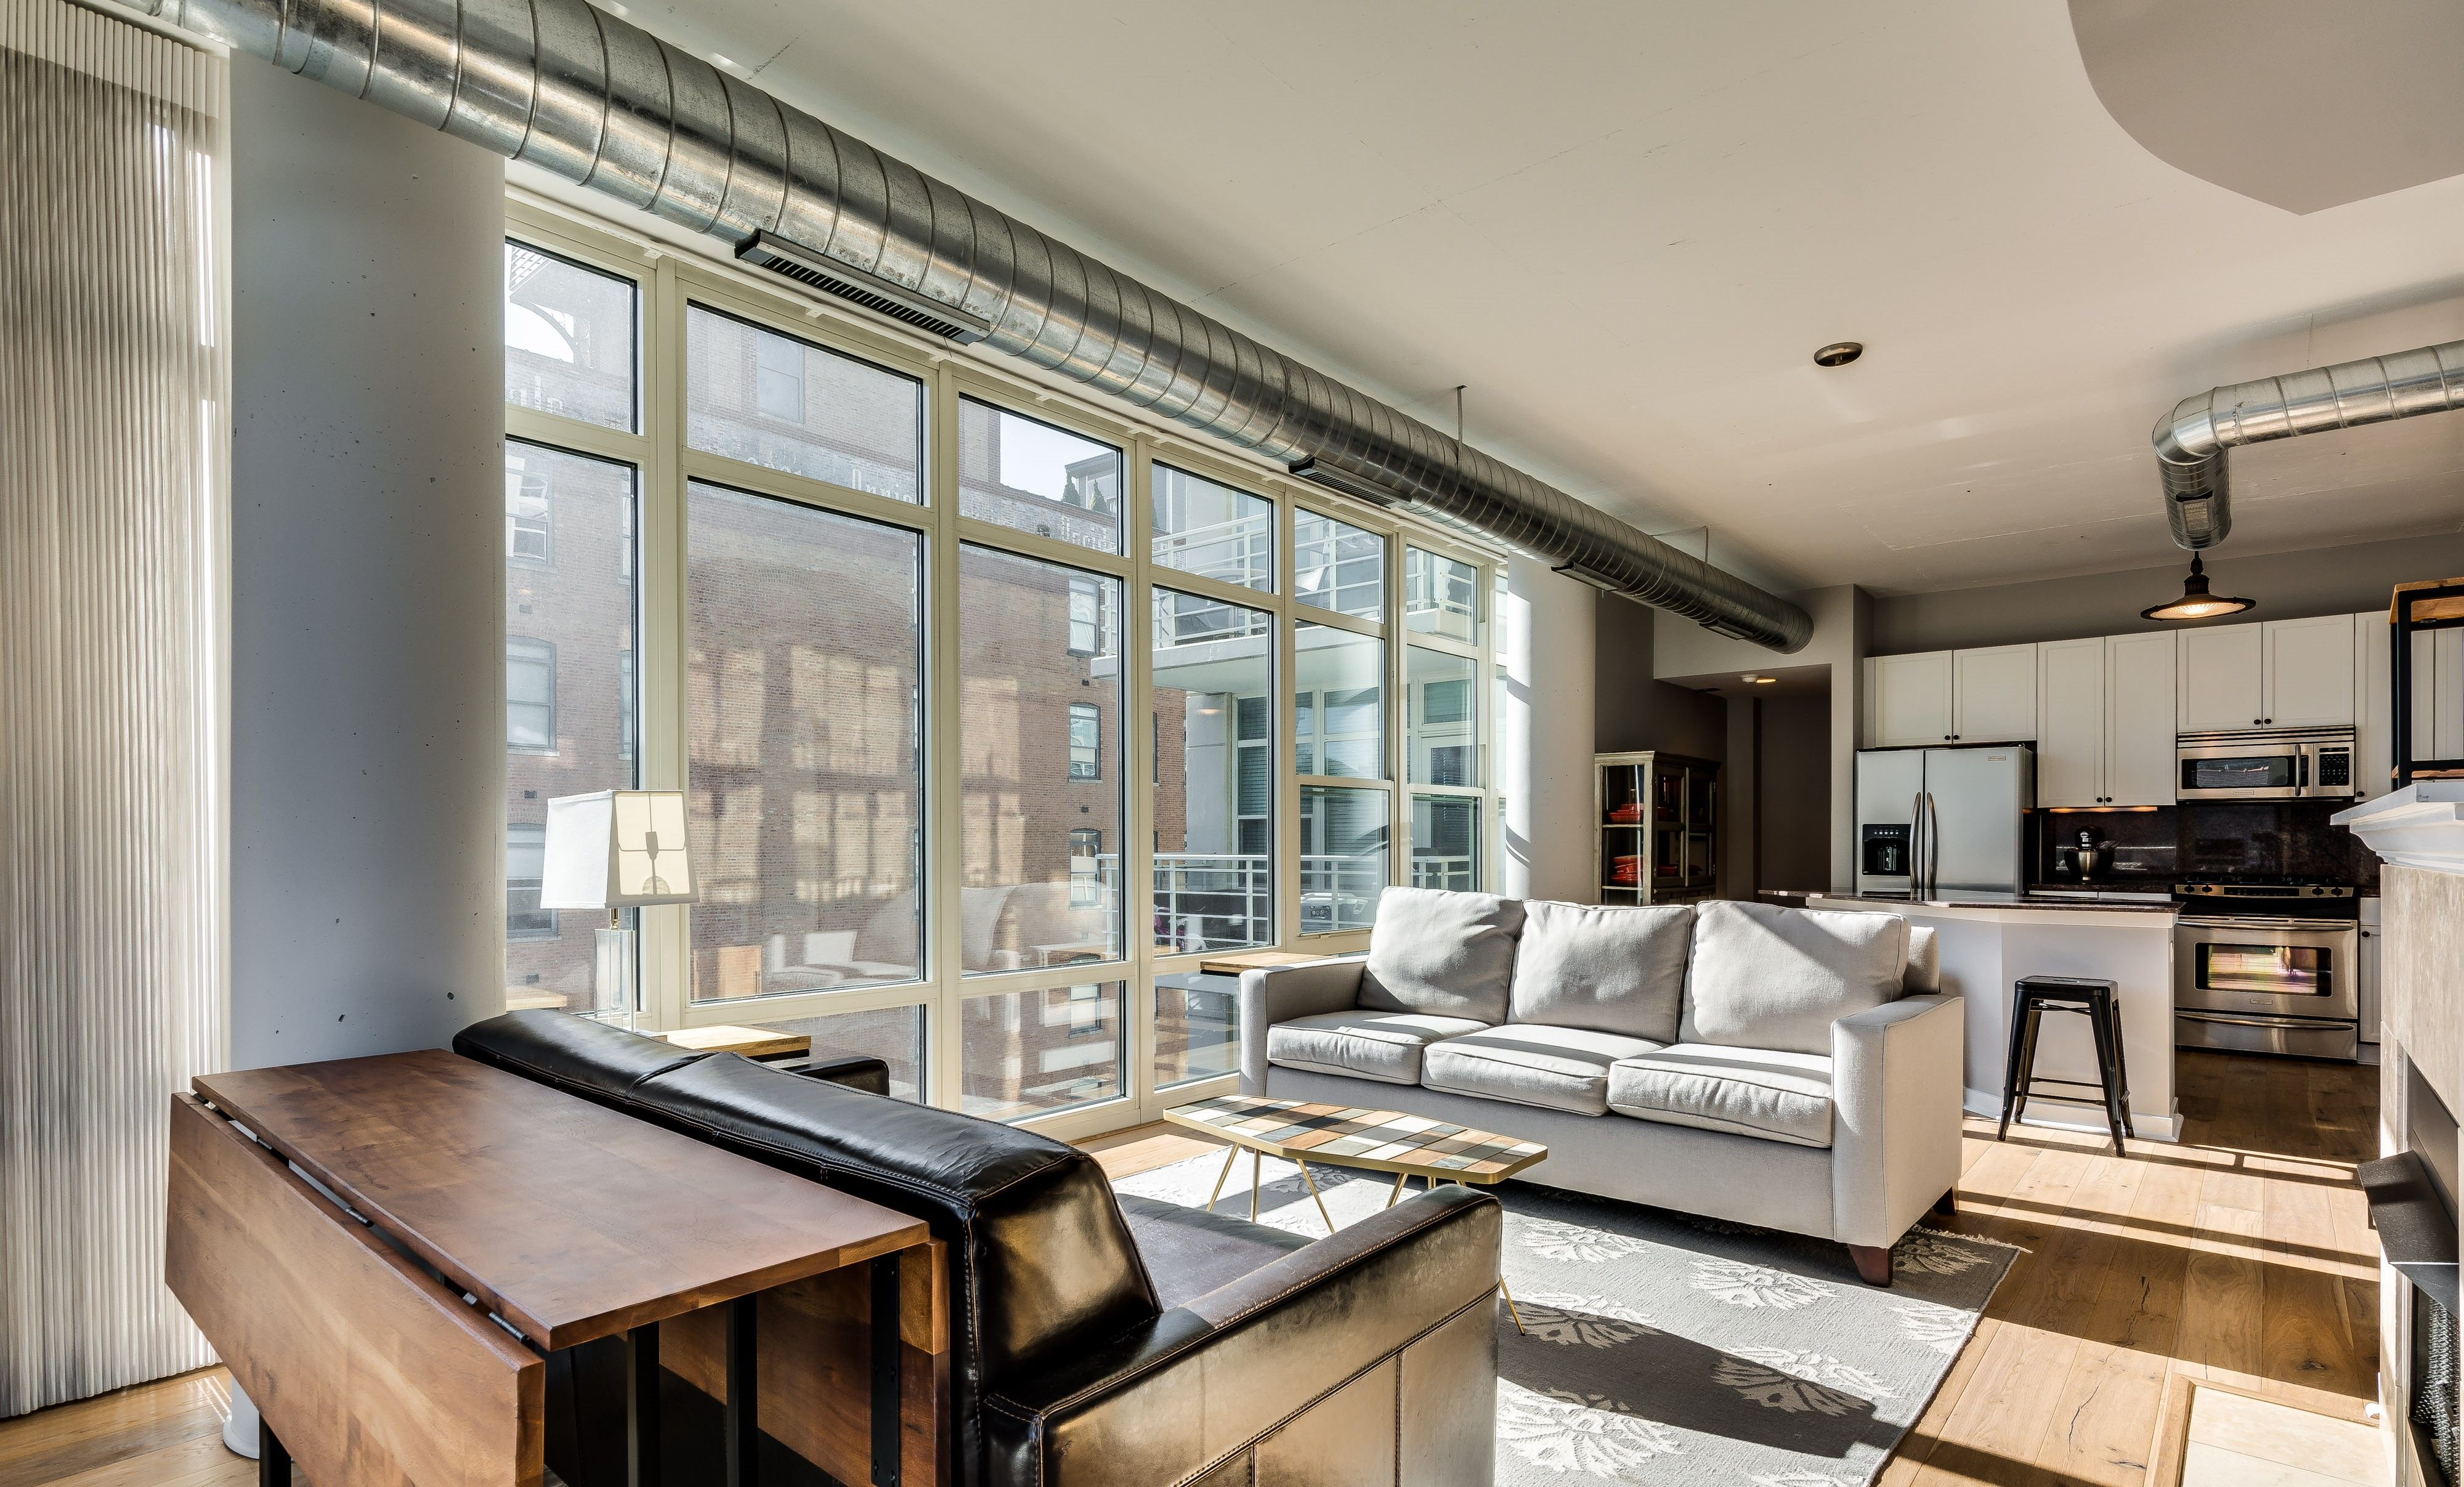 Modern city apartment with exposed ductwork, hardwood floors ...